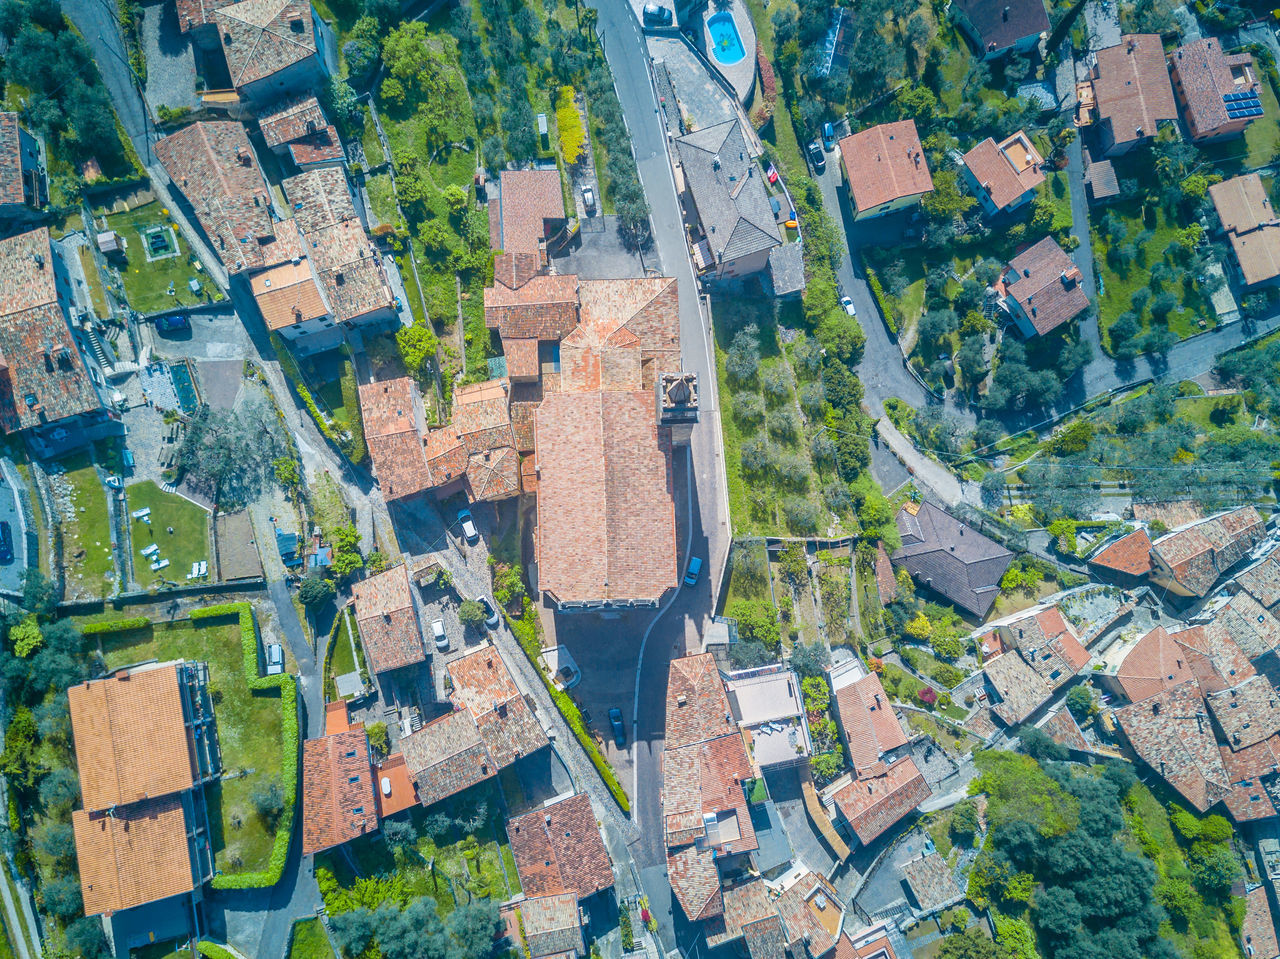 Aerial View Of Buildings At Brenzone Sul Garda